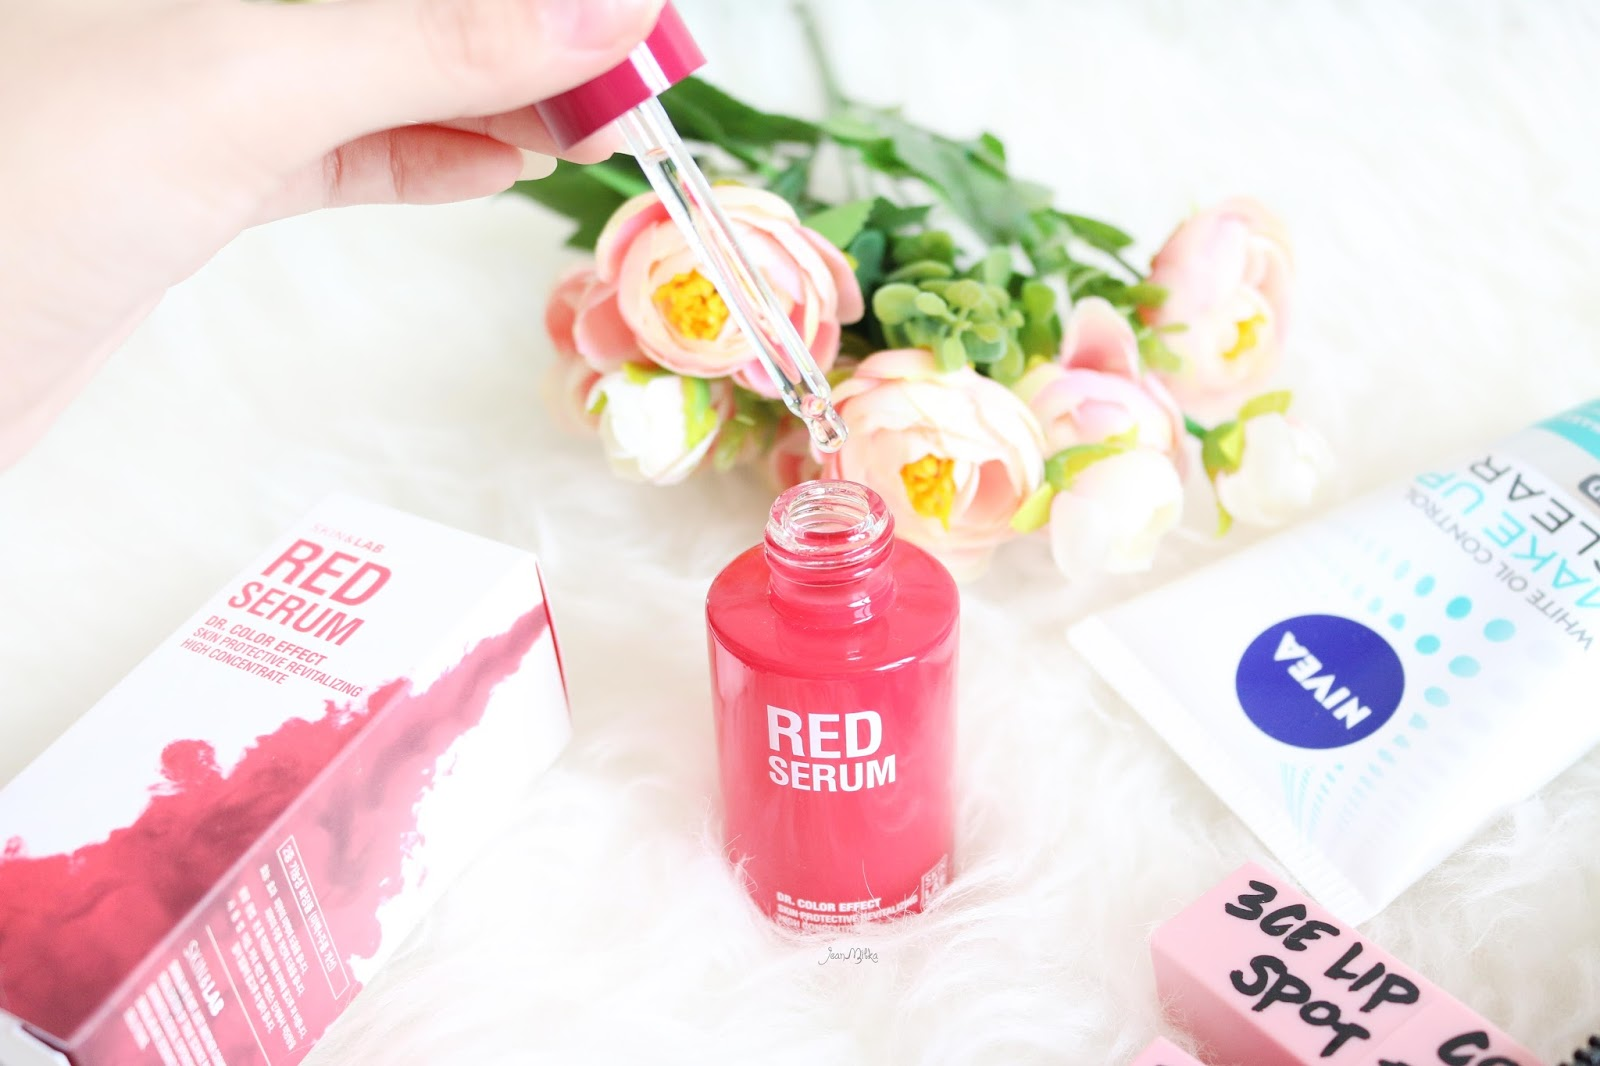 skin&lab, skin & lab, red serum, skin & lab red serum, skincare, skincare korea, serum, skincare serum, serum korea, red serum, review red serum, korean skincare